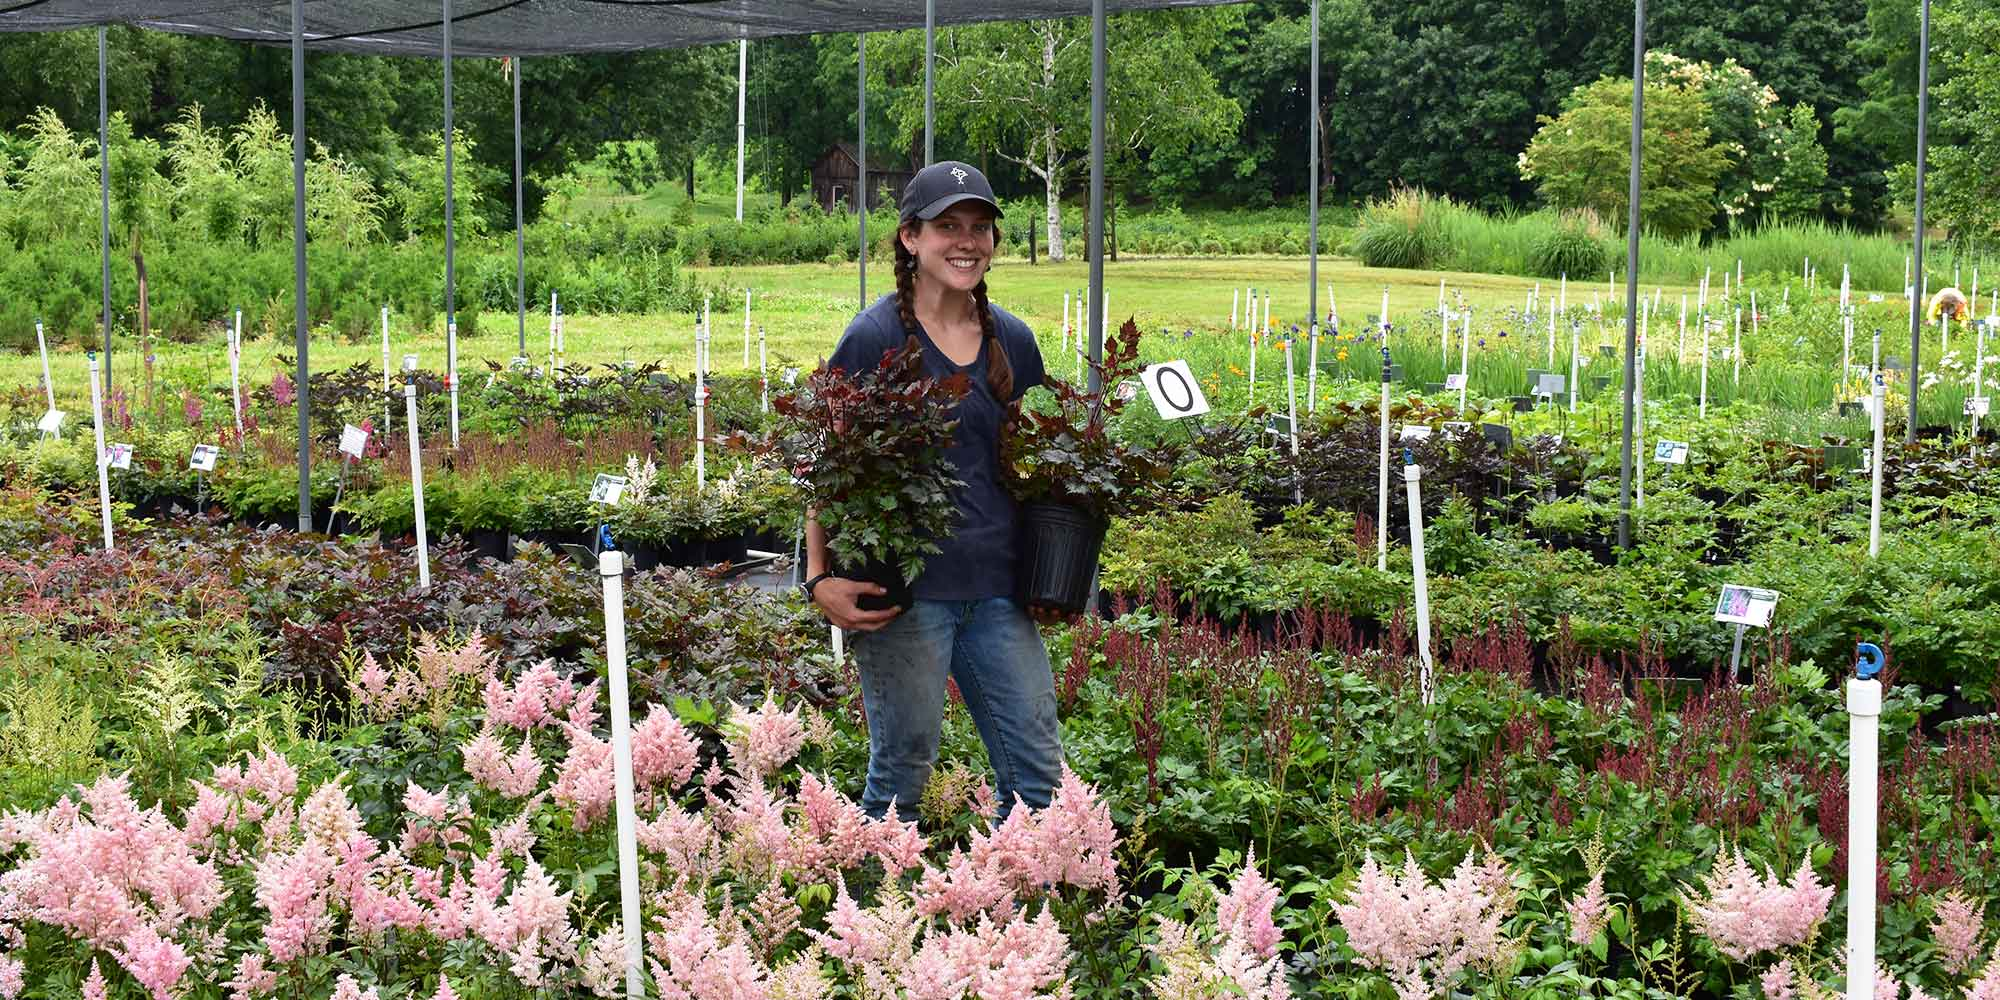 Team member holding astilbe in perennial growing area